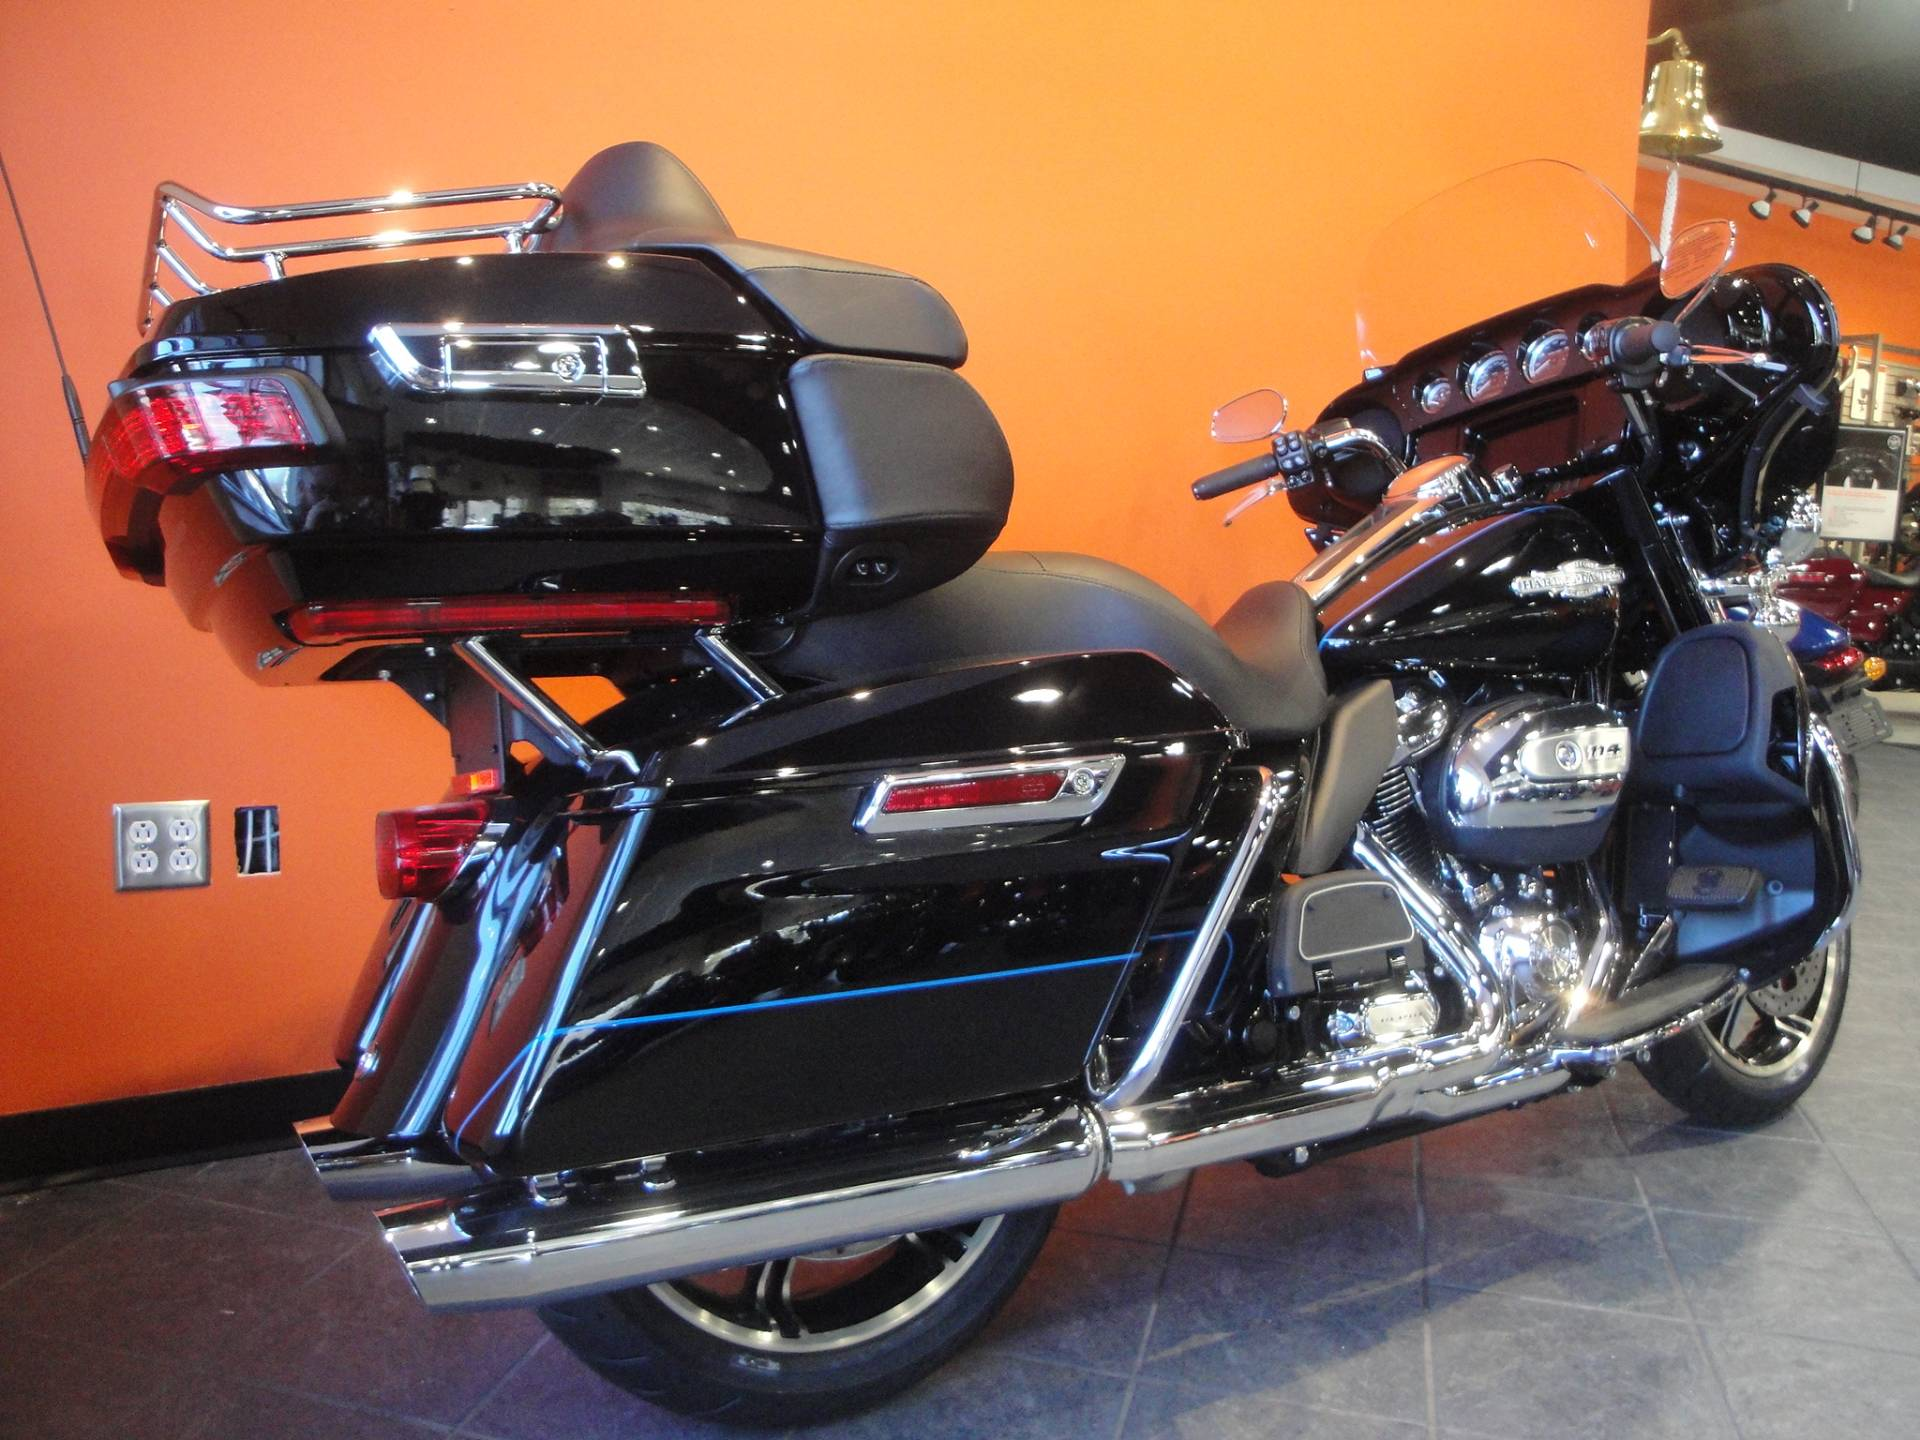 2020 Harley-Davidson Electra Glide Ultra Limited in Portage, Michigan - Photo 3